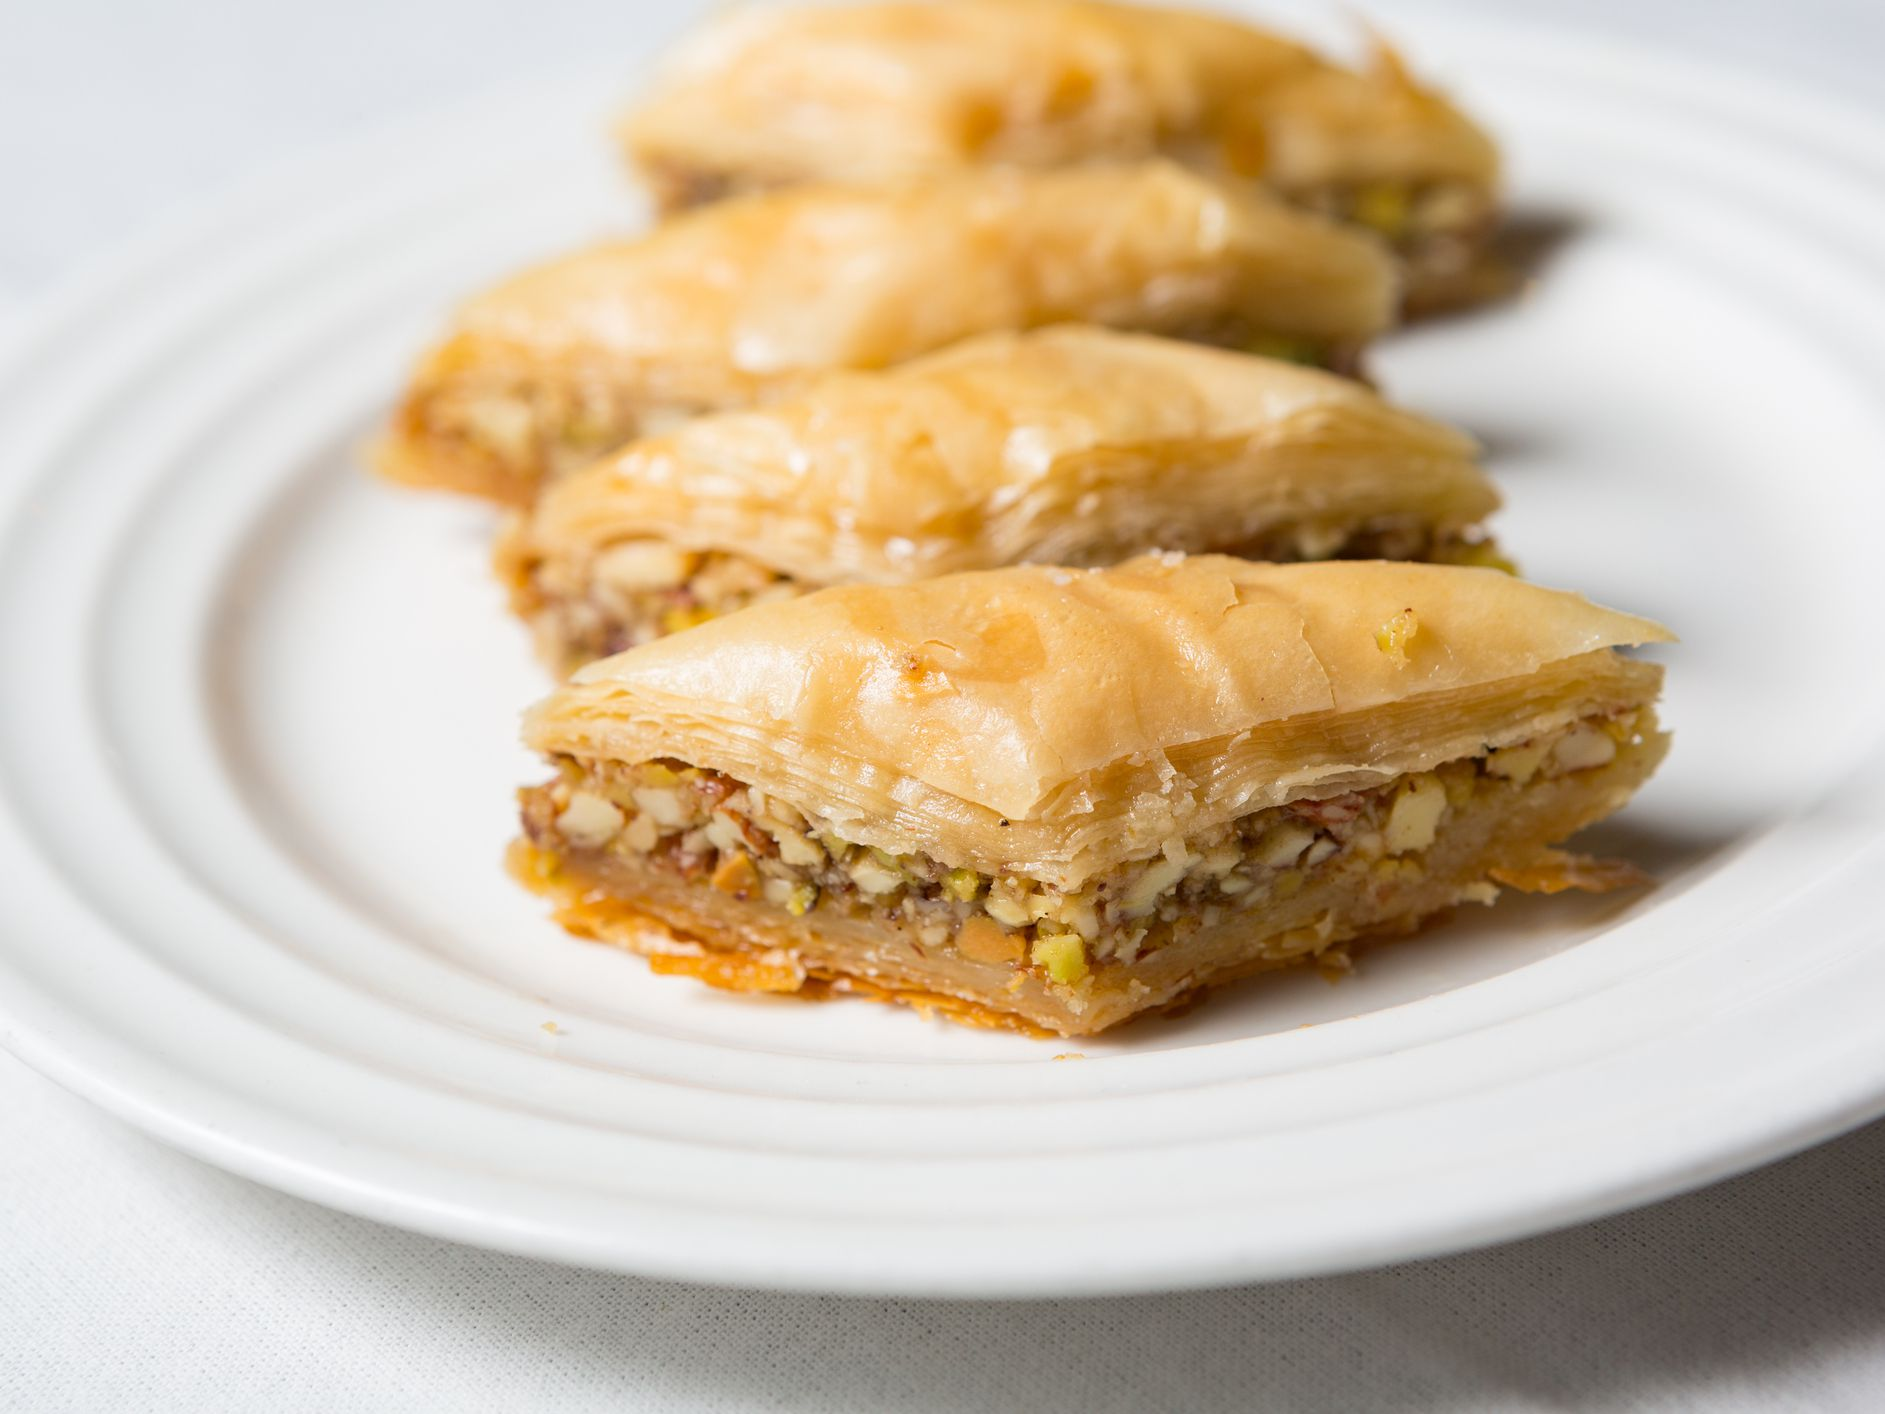 Beginner's Guide to Making Phyllo Pastries & Pies